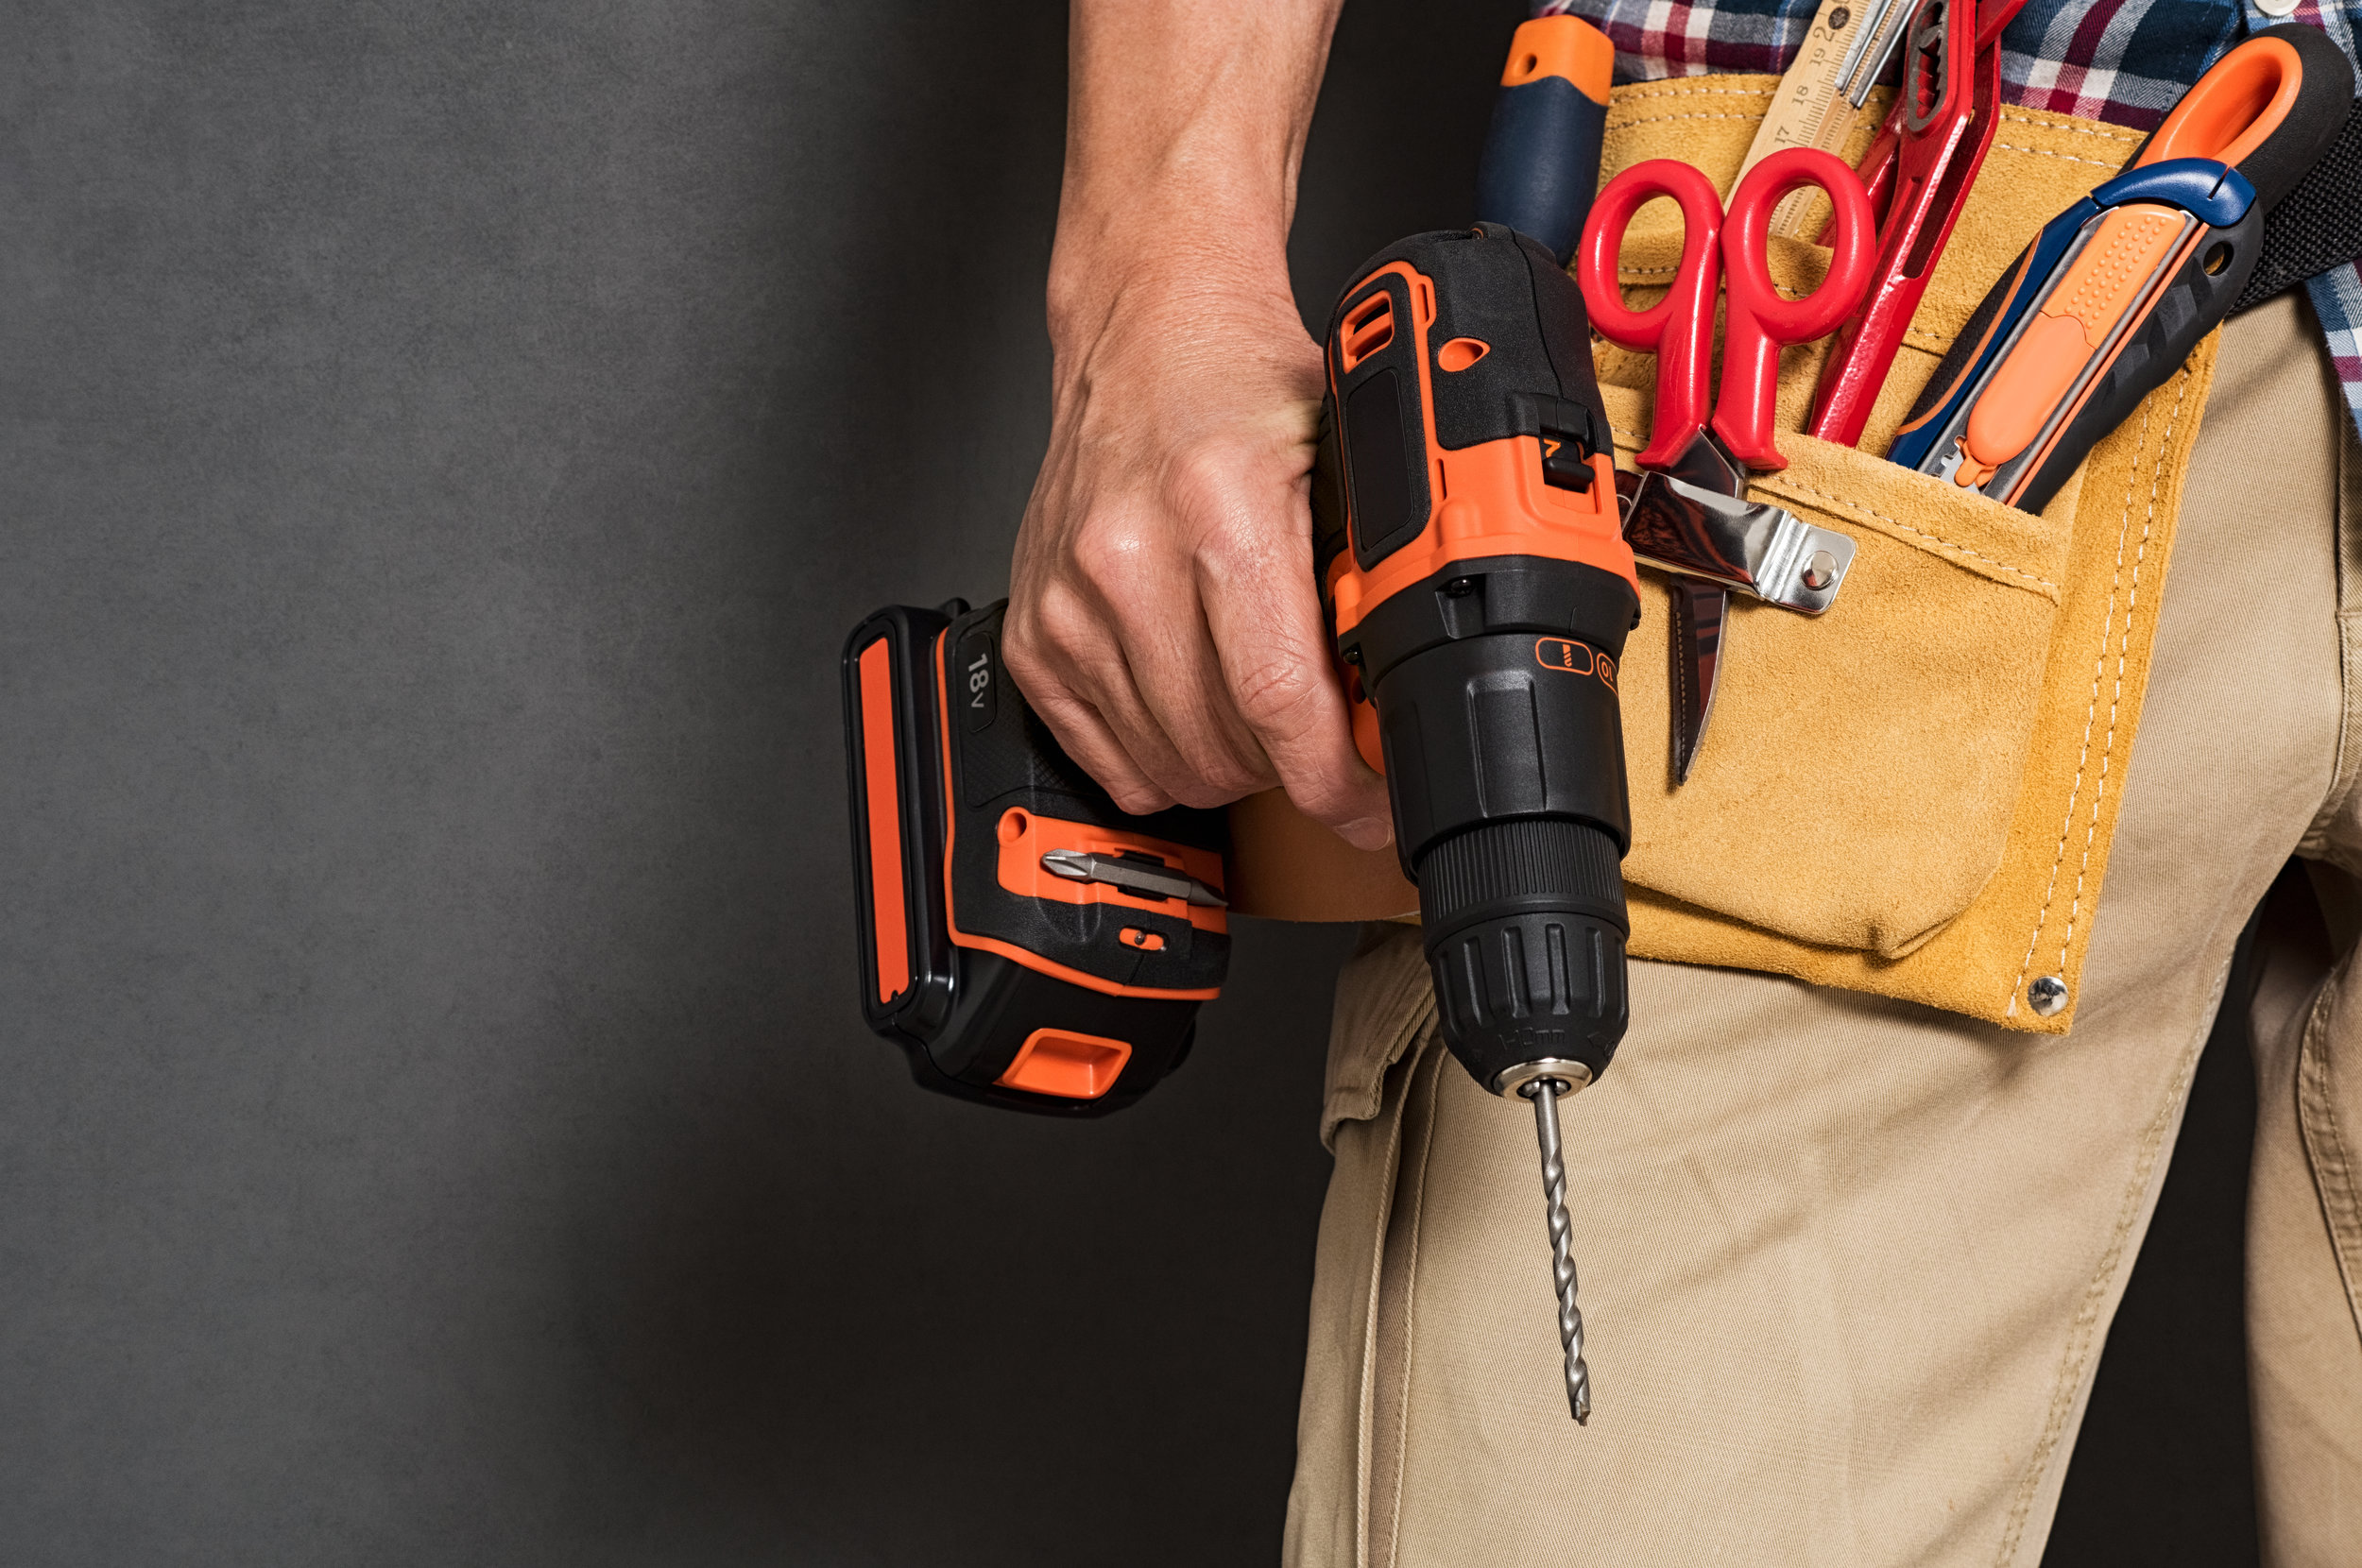 Why Do You Need a Drill Holster Tool Belt, and How Do You Use It?